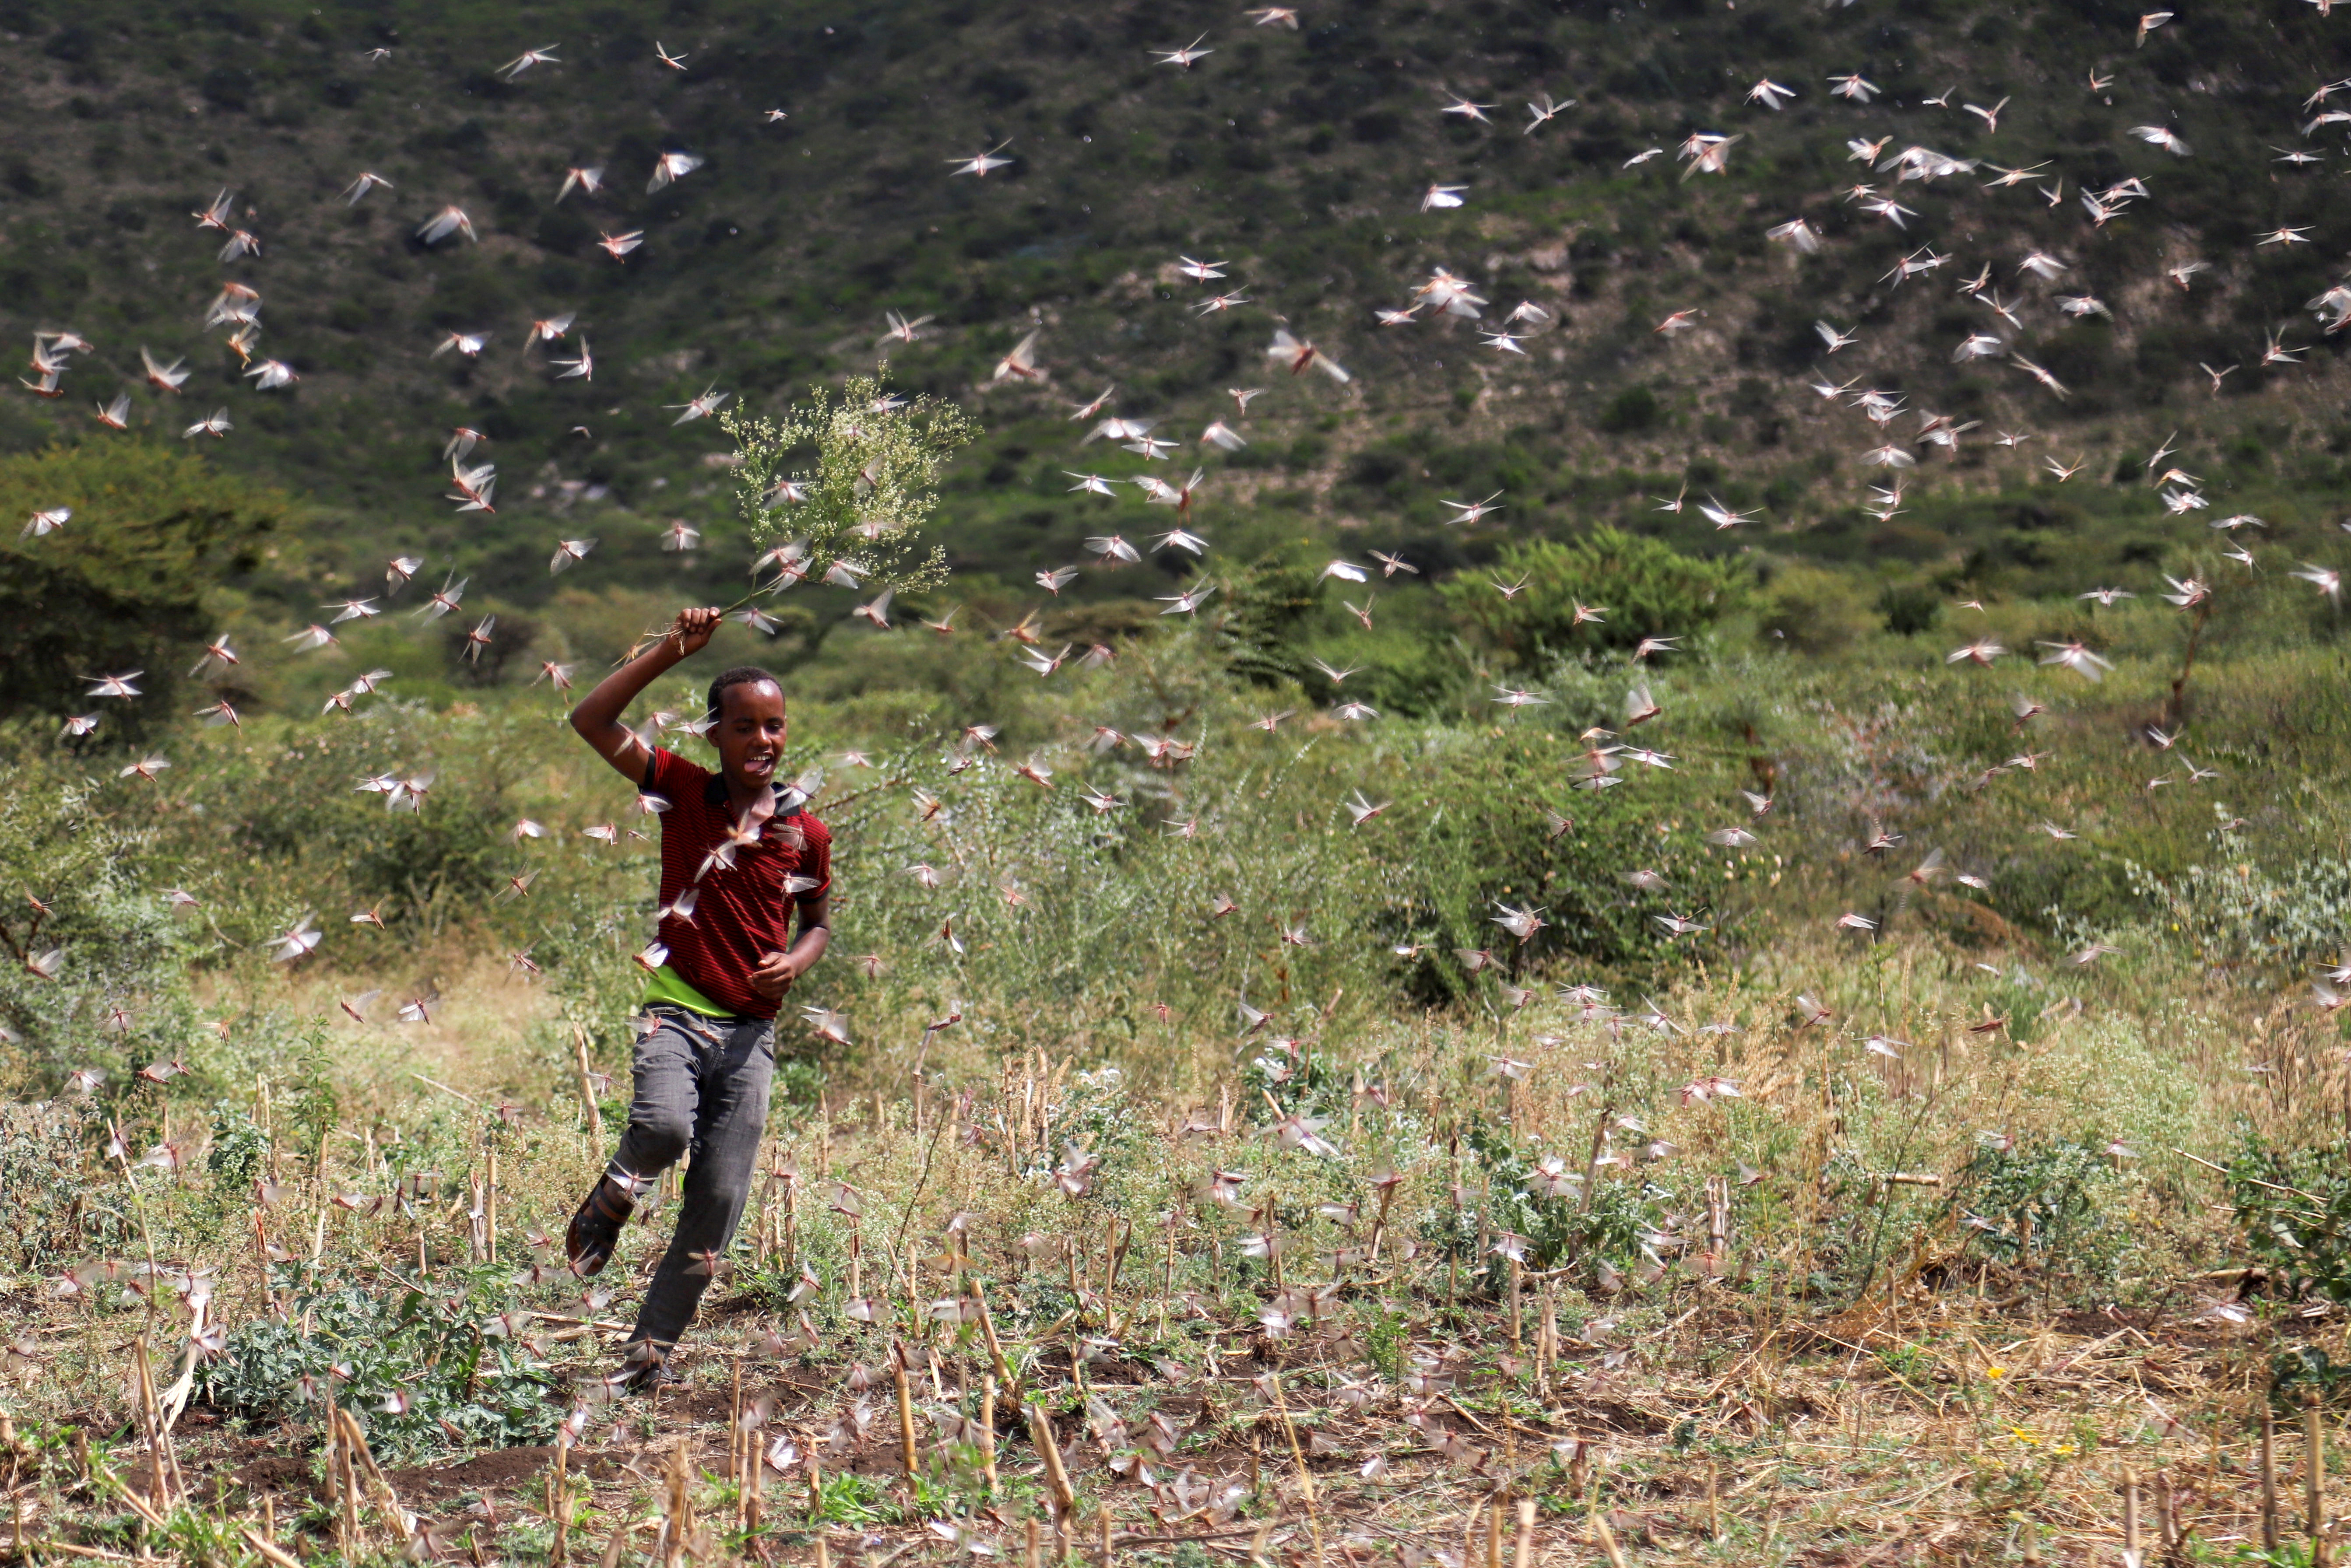 New Swarms of Locusts Threaten Crops, Food Security in Ethiopia